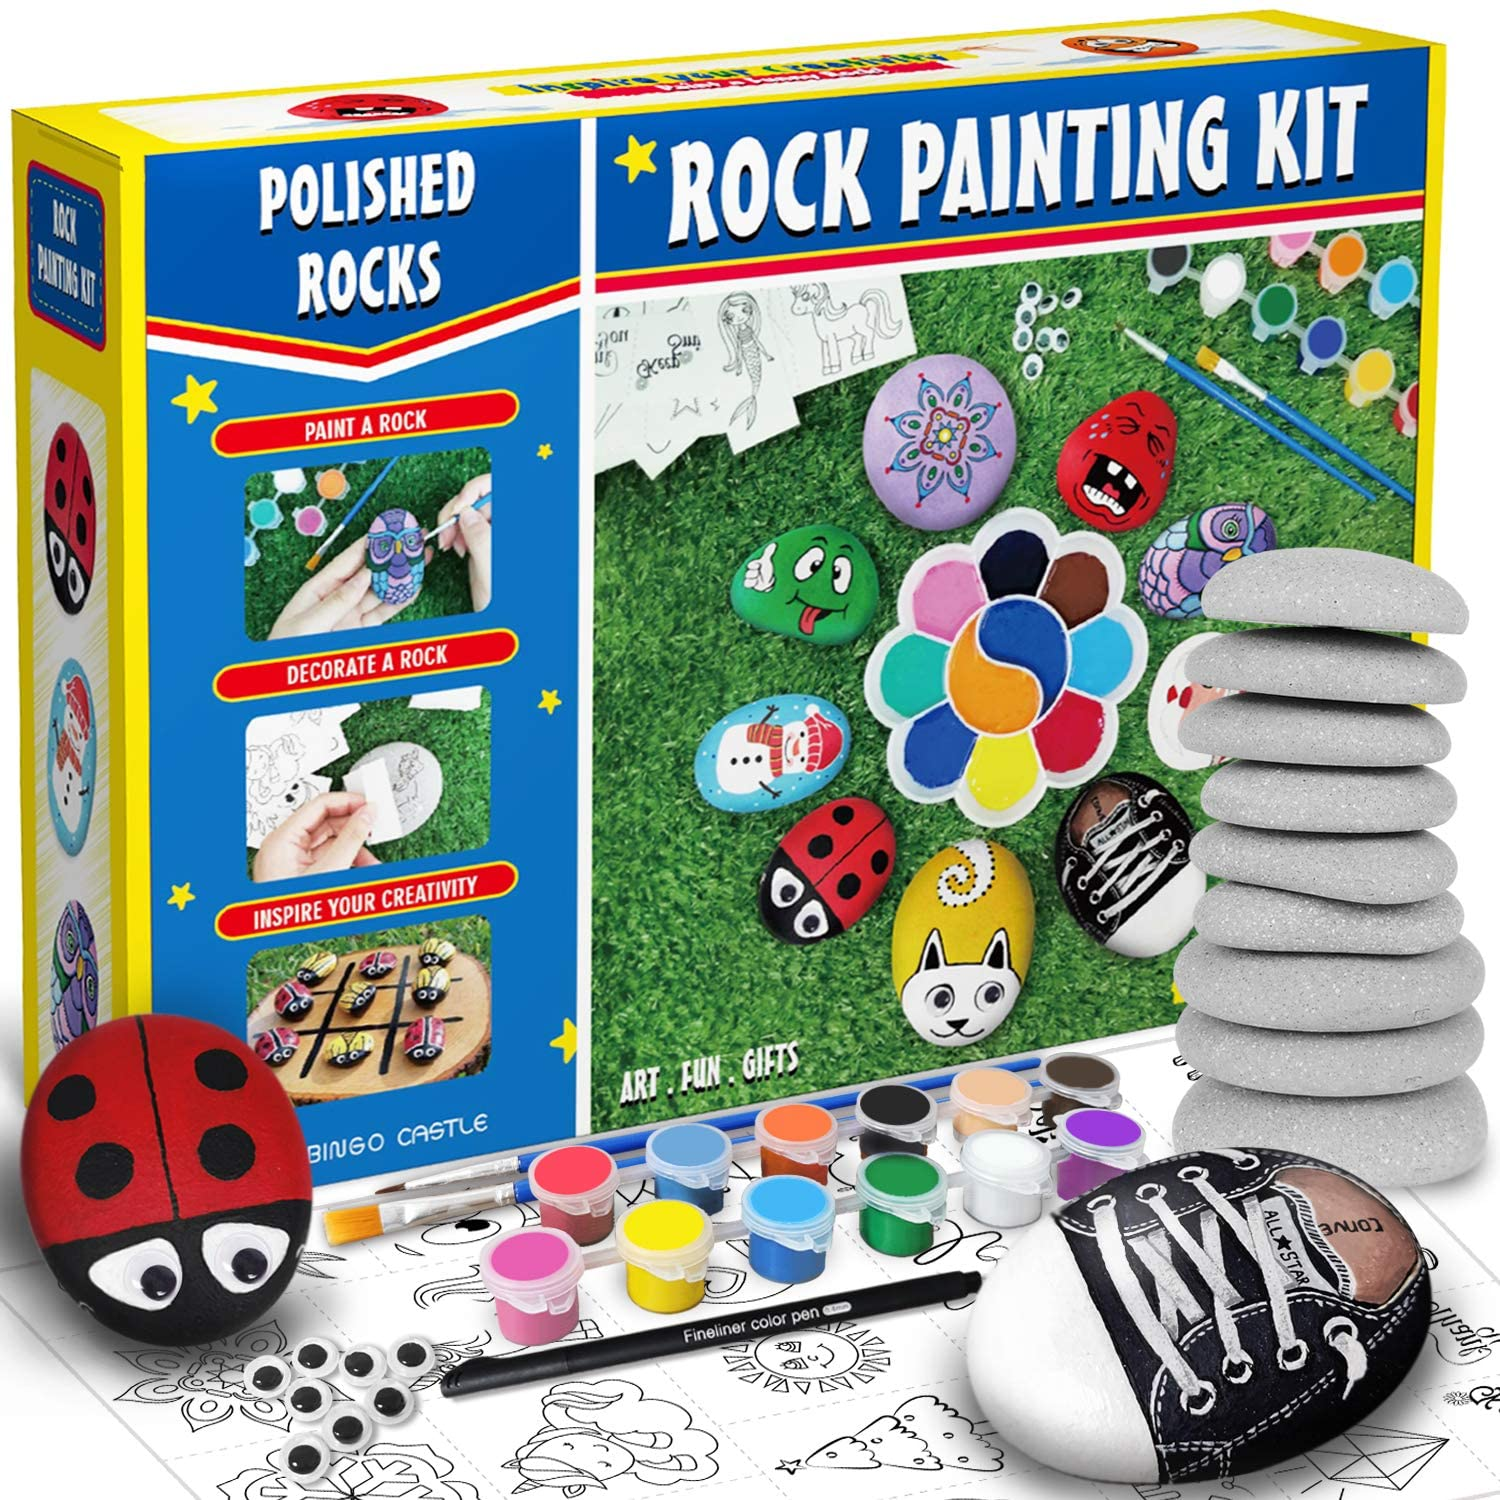 Bingo Castle Rock Painting Kit - Big Polished White-Grey Rocks for Painting, Arts and Crafts for Kids Age 4-8-12 Acrylic Paint 25 Transfer Designs Hide and Seek River Rocks Gifts for Boys and Girls